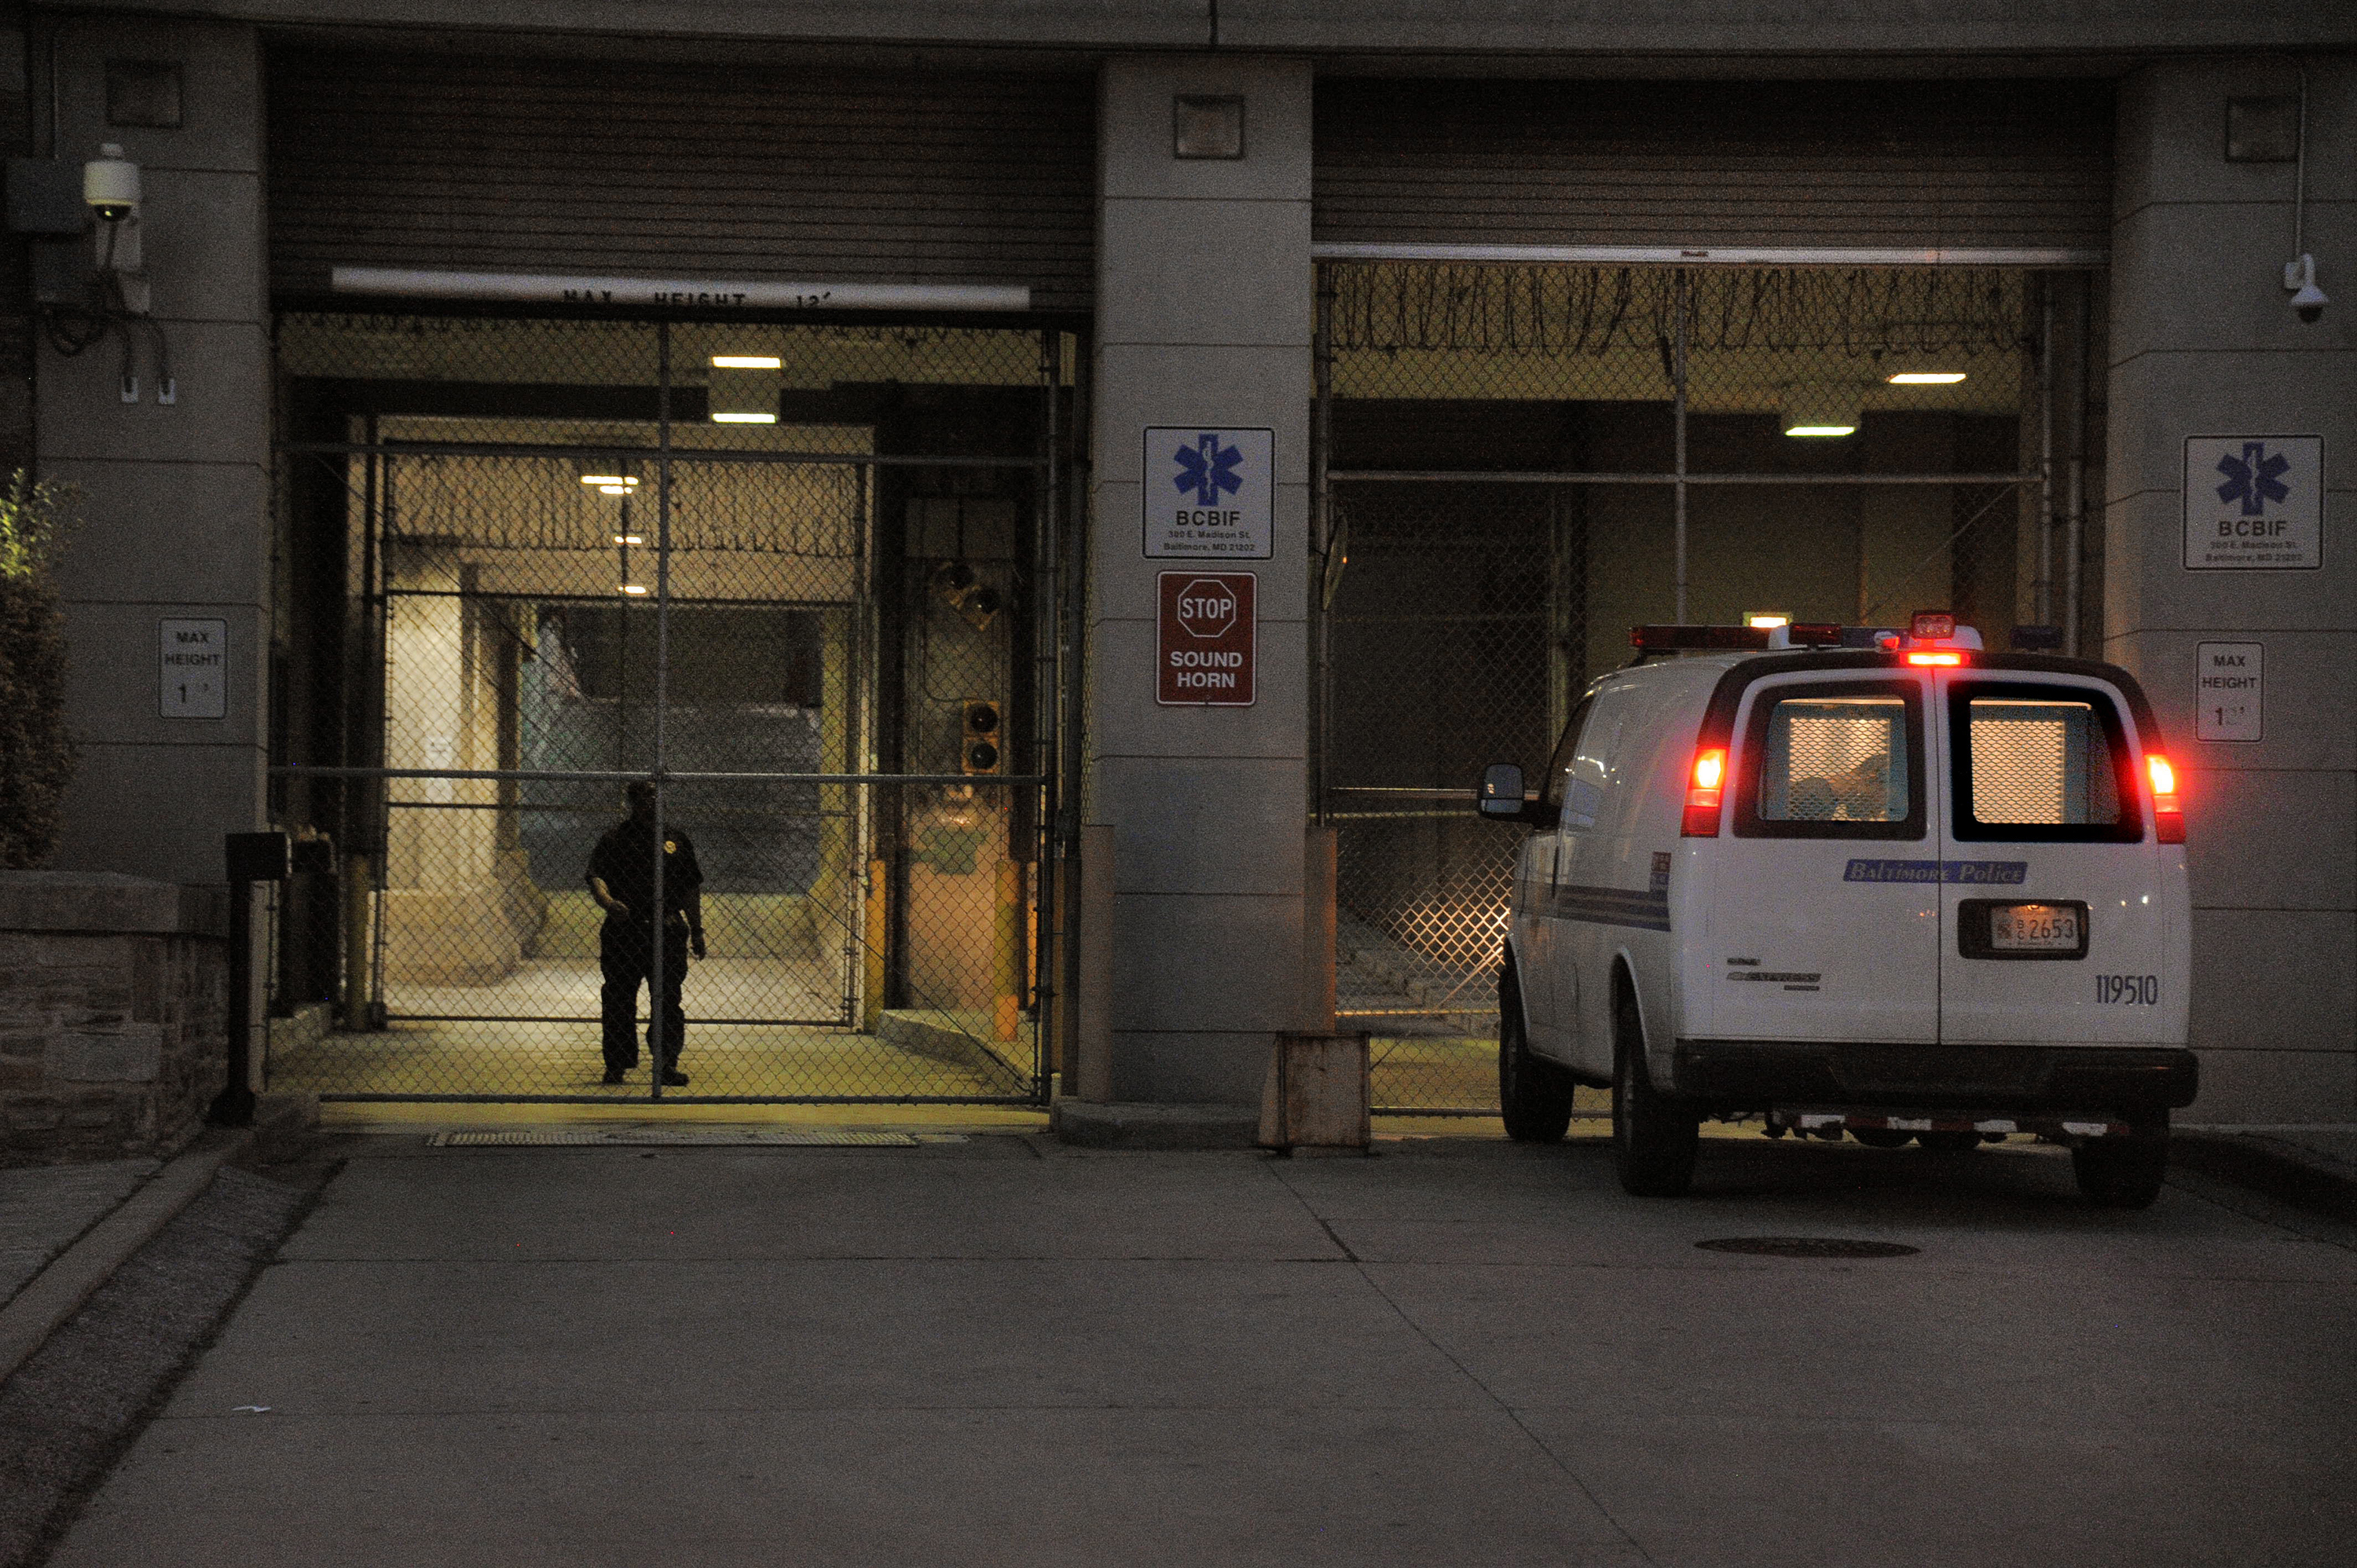 A Baltimore Police transfer van pulls into the Baltimore Central Booking and Intake Center on May 7, 2015.